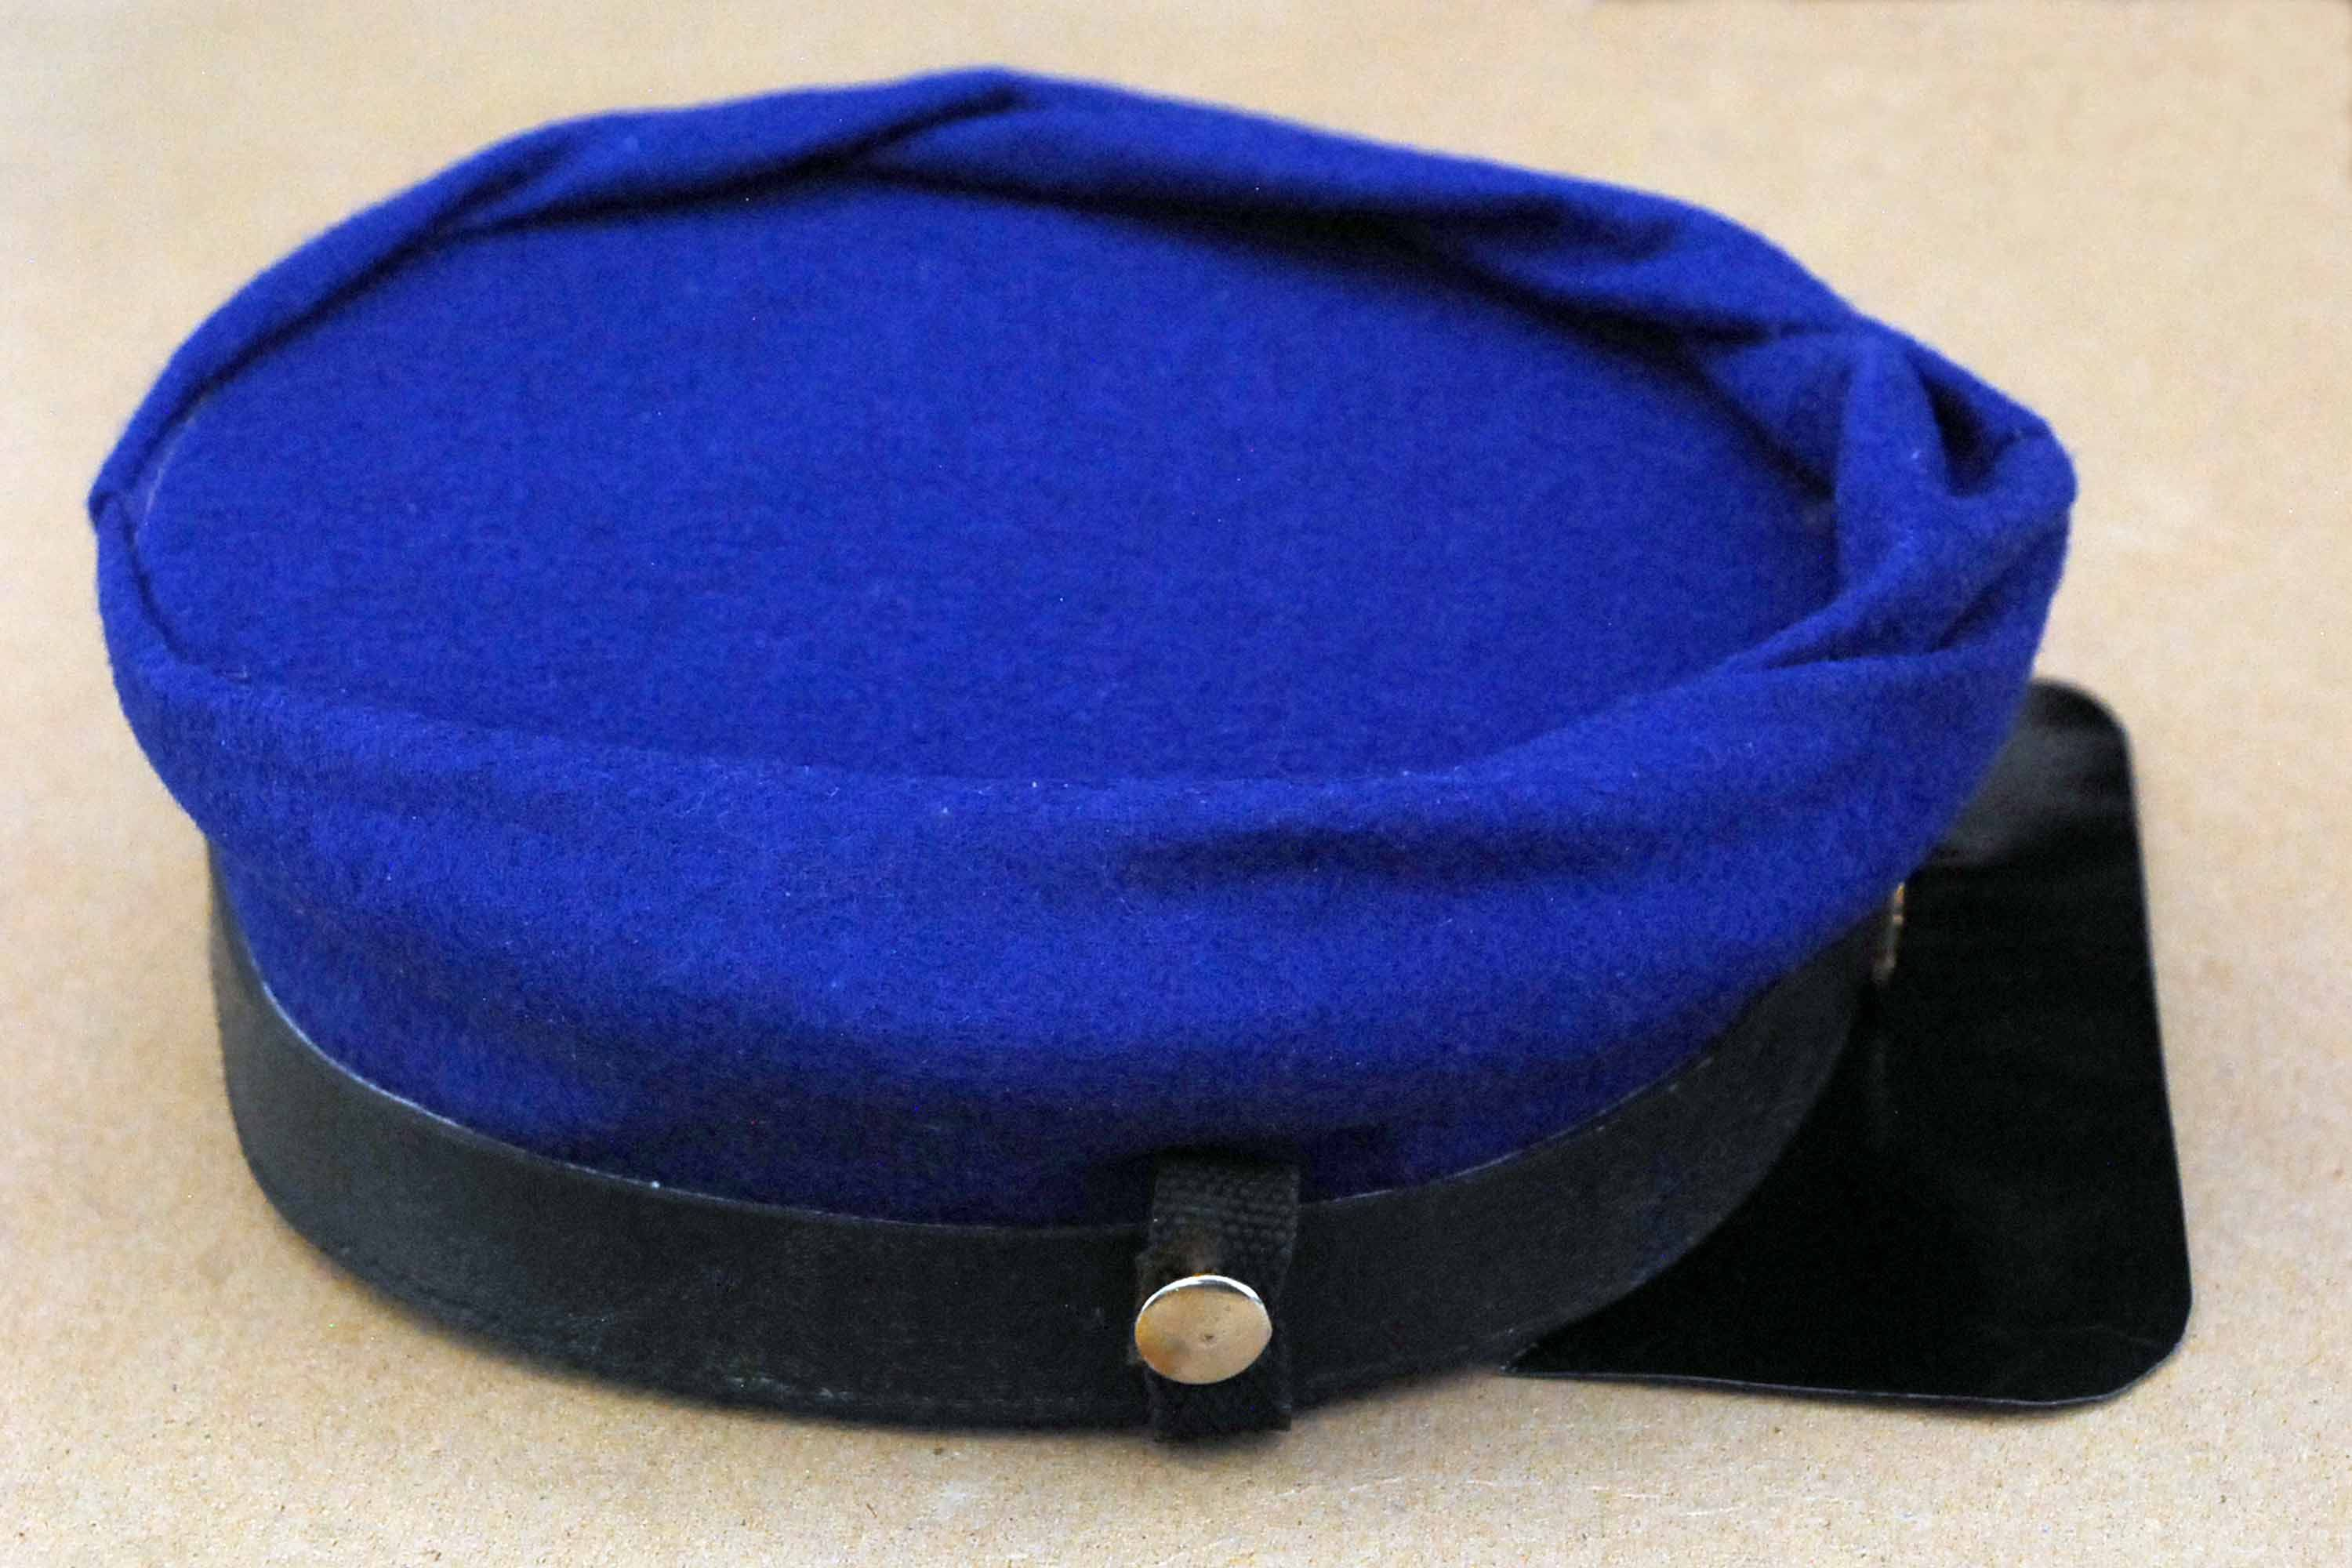 How to Make a Civil War Kepi. Both Union and Confederate soldiers wore hats  called kepis during the Civil War. The French army originally adopted the  kepi ... 792dd9d44601